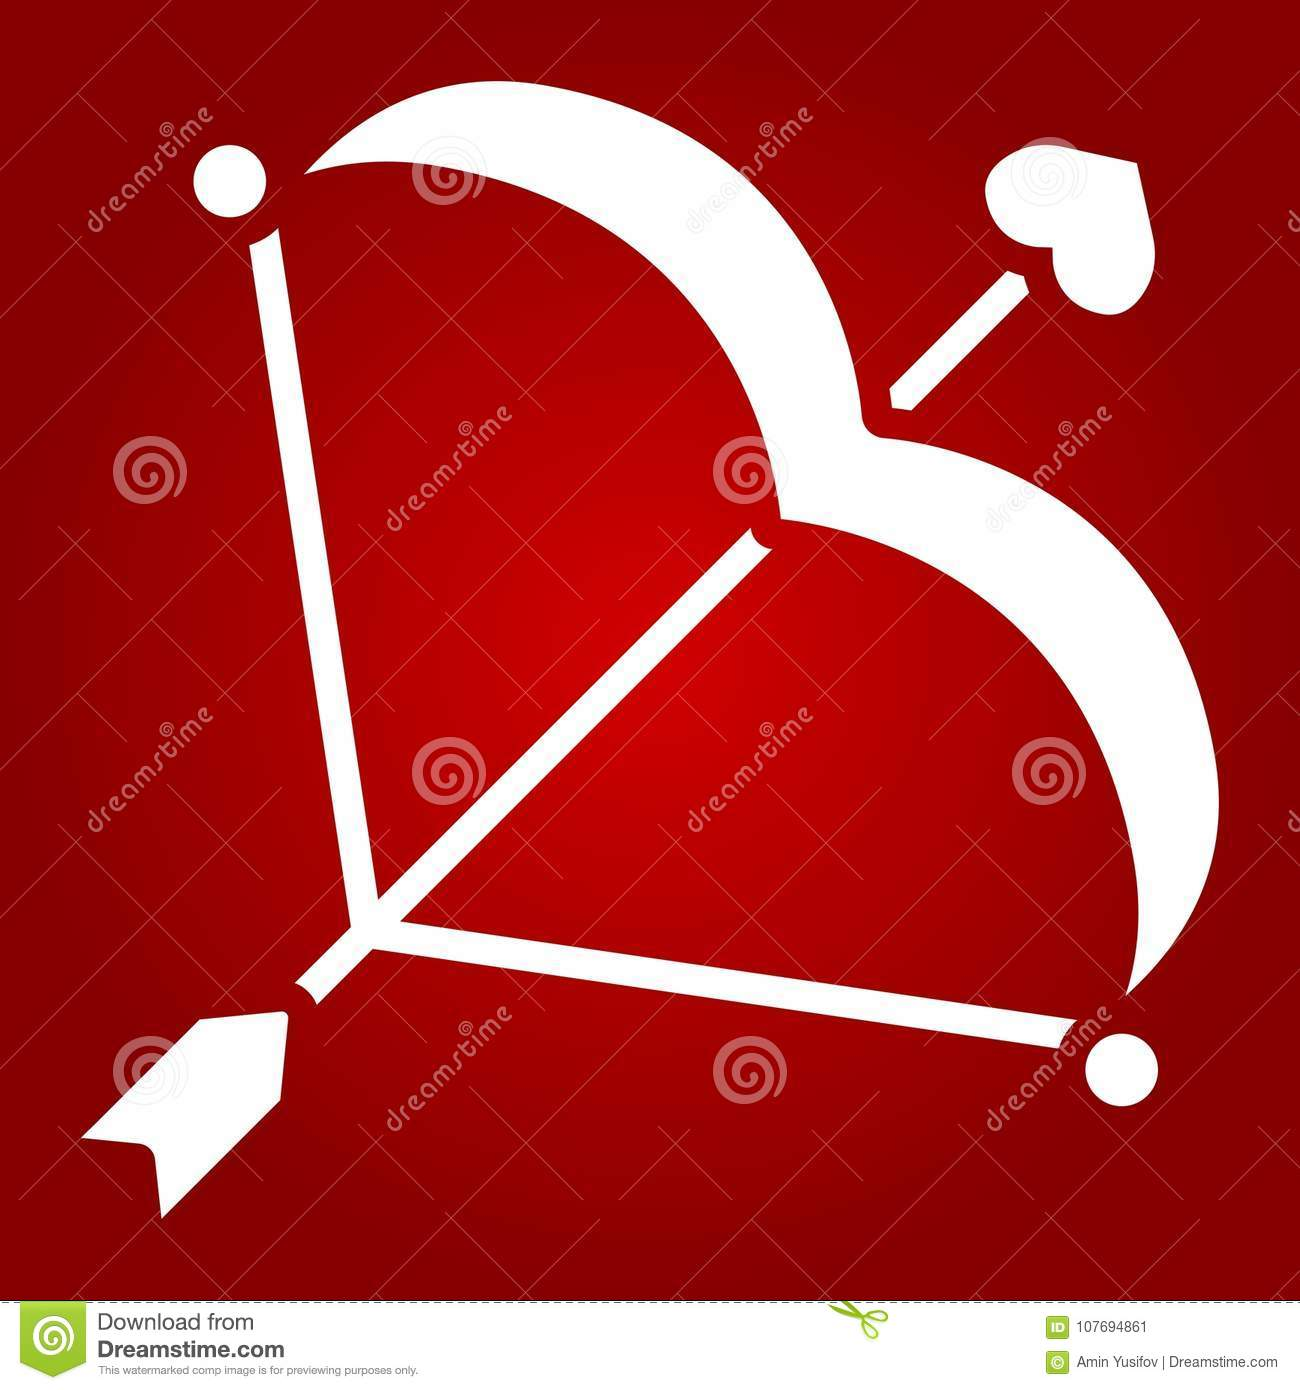 Cupid Bow With Arrow Glyph Icon Valentines Day Stock Vector